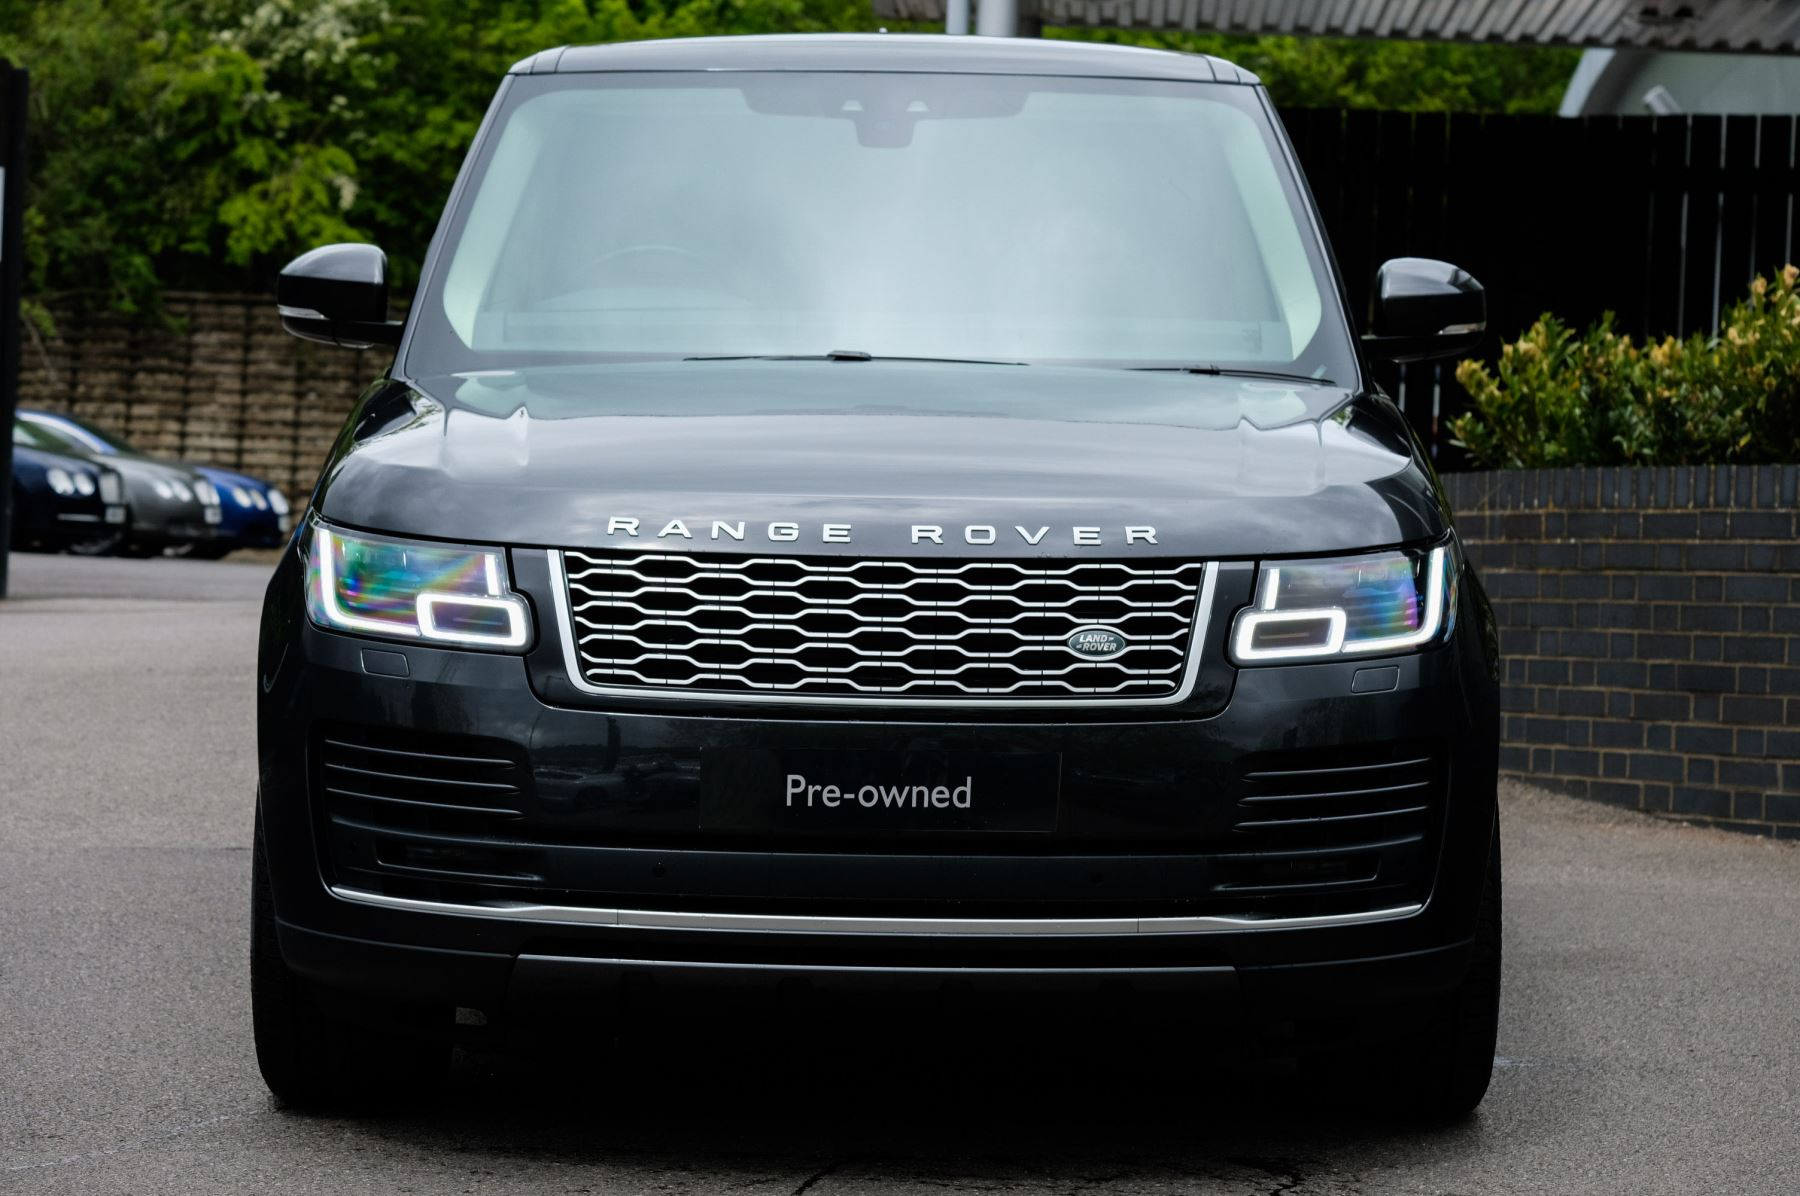 Land Rover Range Rover 3.0 SDV6 Vogue SE - Panoramic Roof - Privacy Glass - 21 inch Alloys image 2